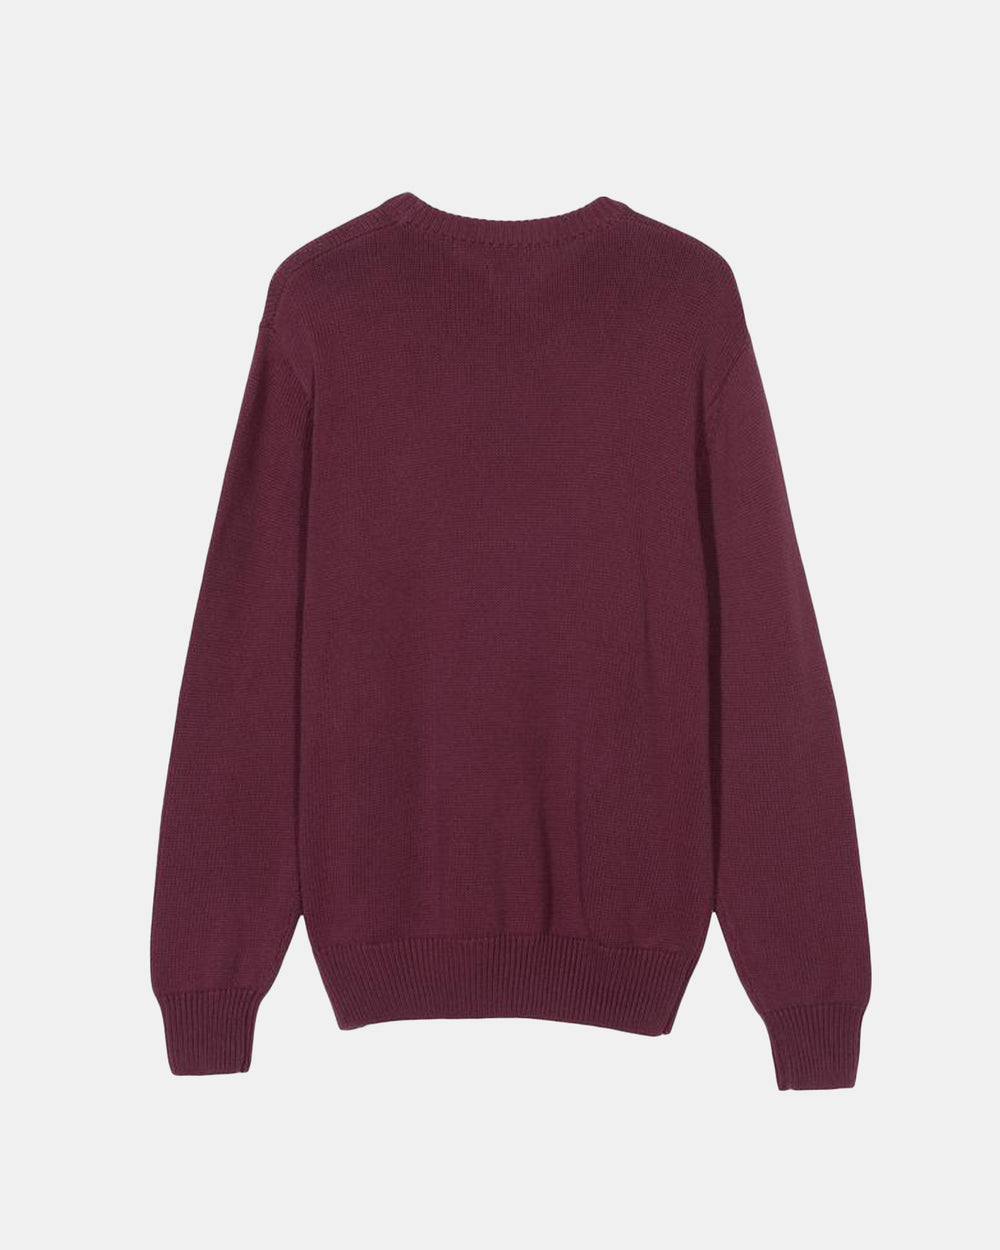 Stussy - Curly Stussy Sweater (Burgundy | Blue)